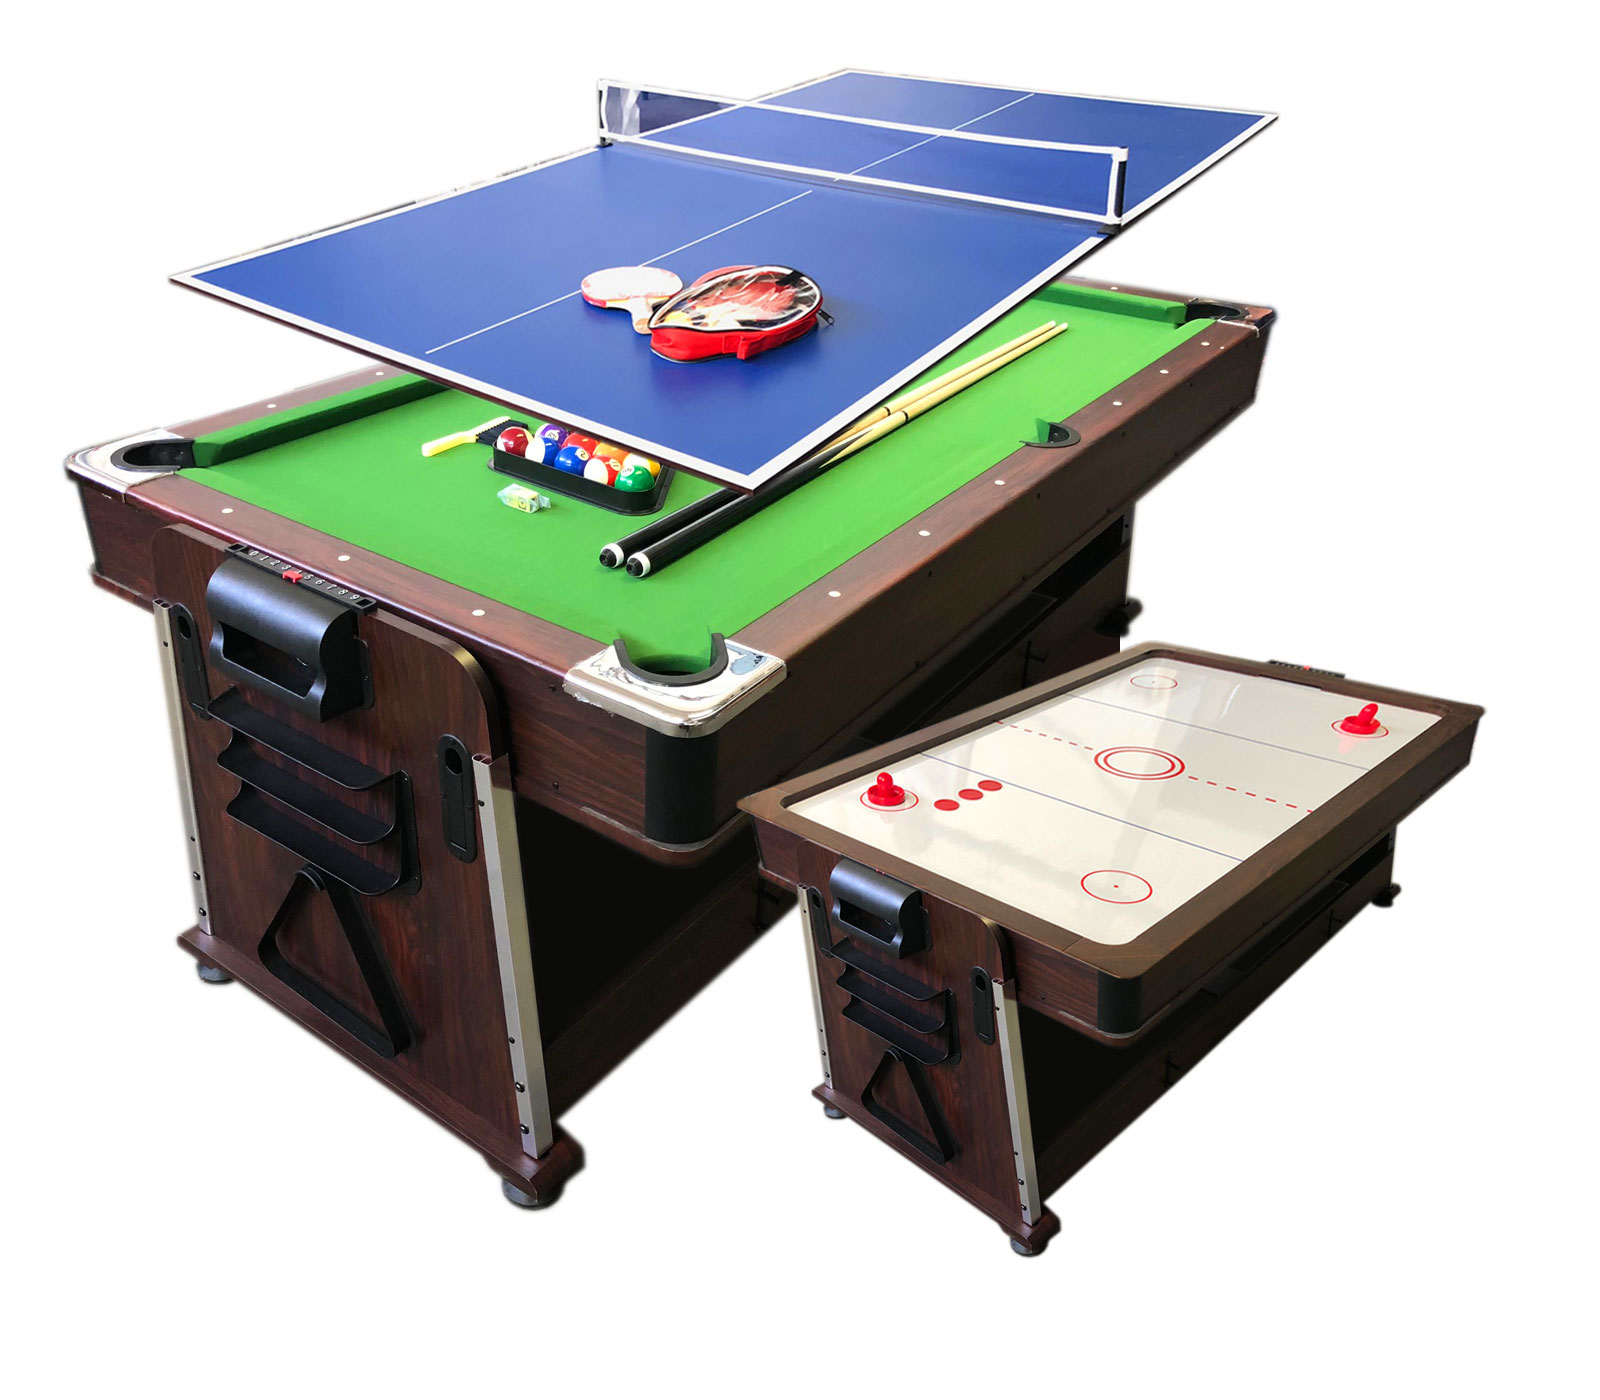 Details about 7Ft Green Pool Table Billiard + Air Hockey + Tennis Table + Cover plan for table  sc 1 st  eBay & 7Ft Green Pool Table Billiard + Air Hockey + Tennis Table + Cover ...